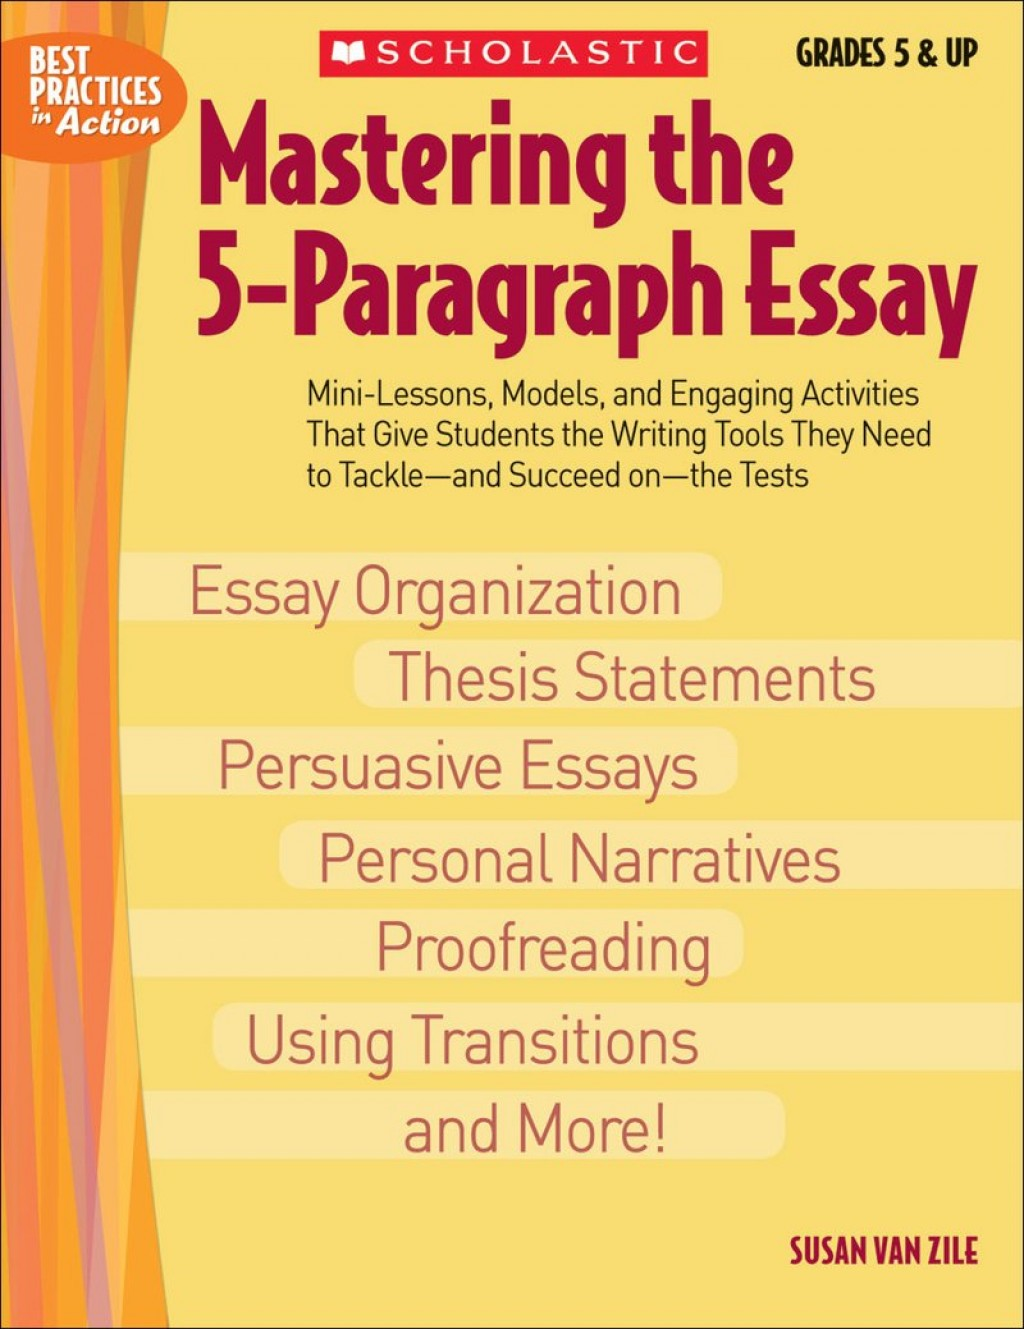 017 Paragraph Essay Example 9780439635257 Mres Singular 5 Template Graphic Organizer Middle School Pdf College Large